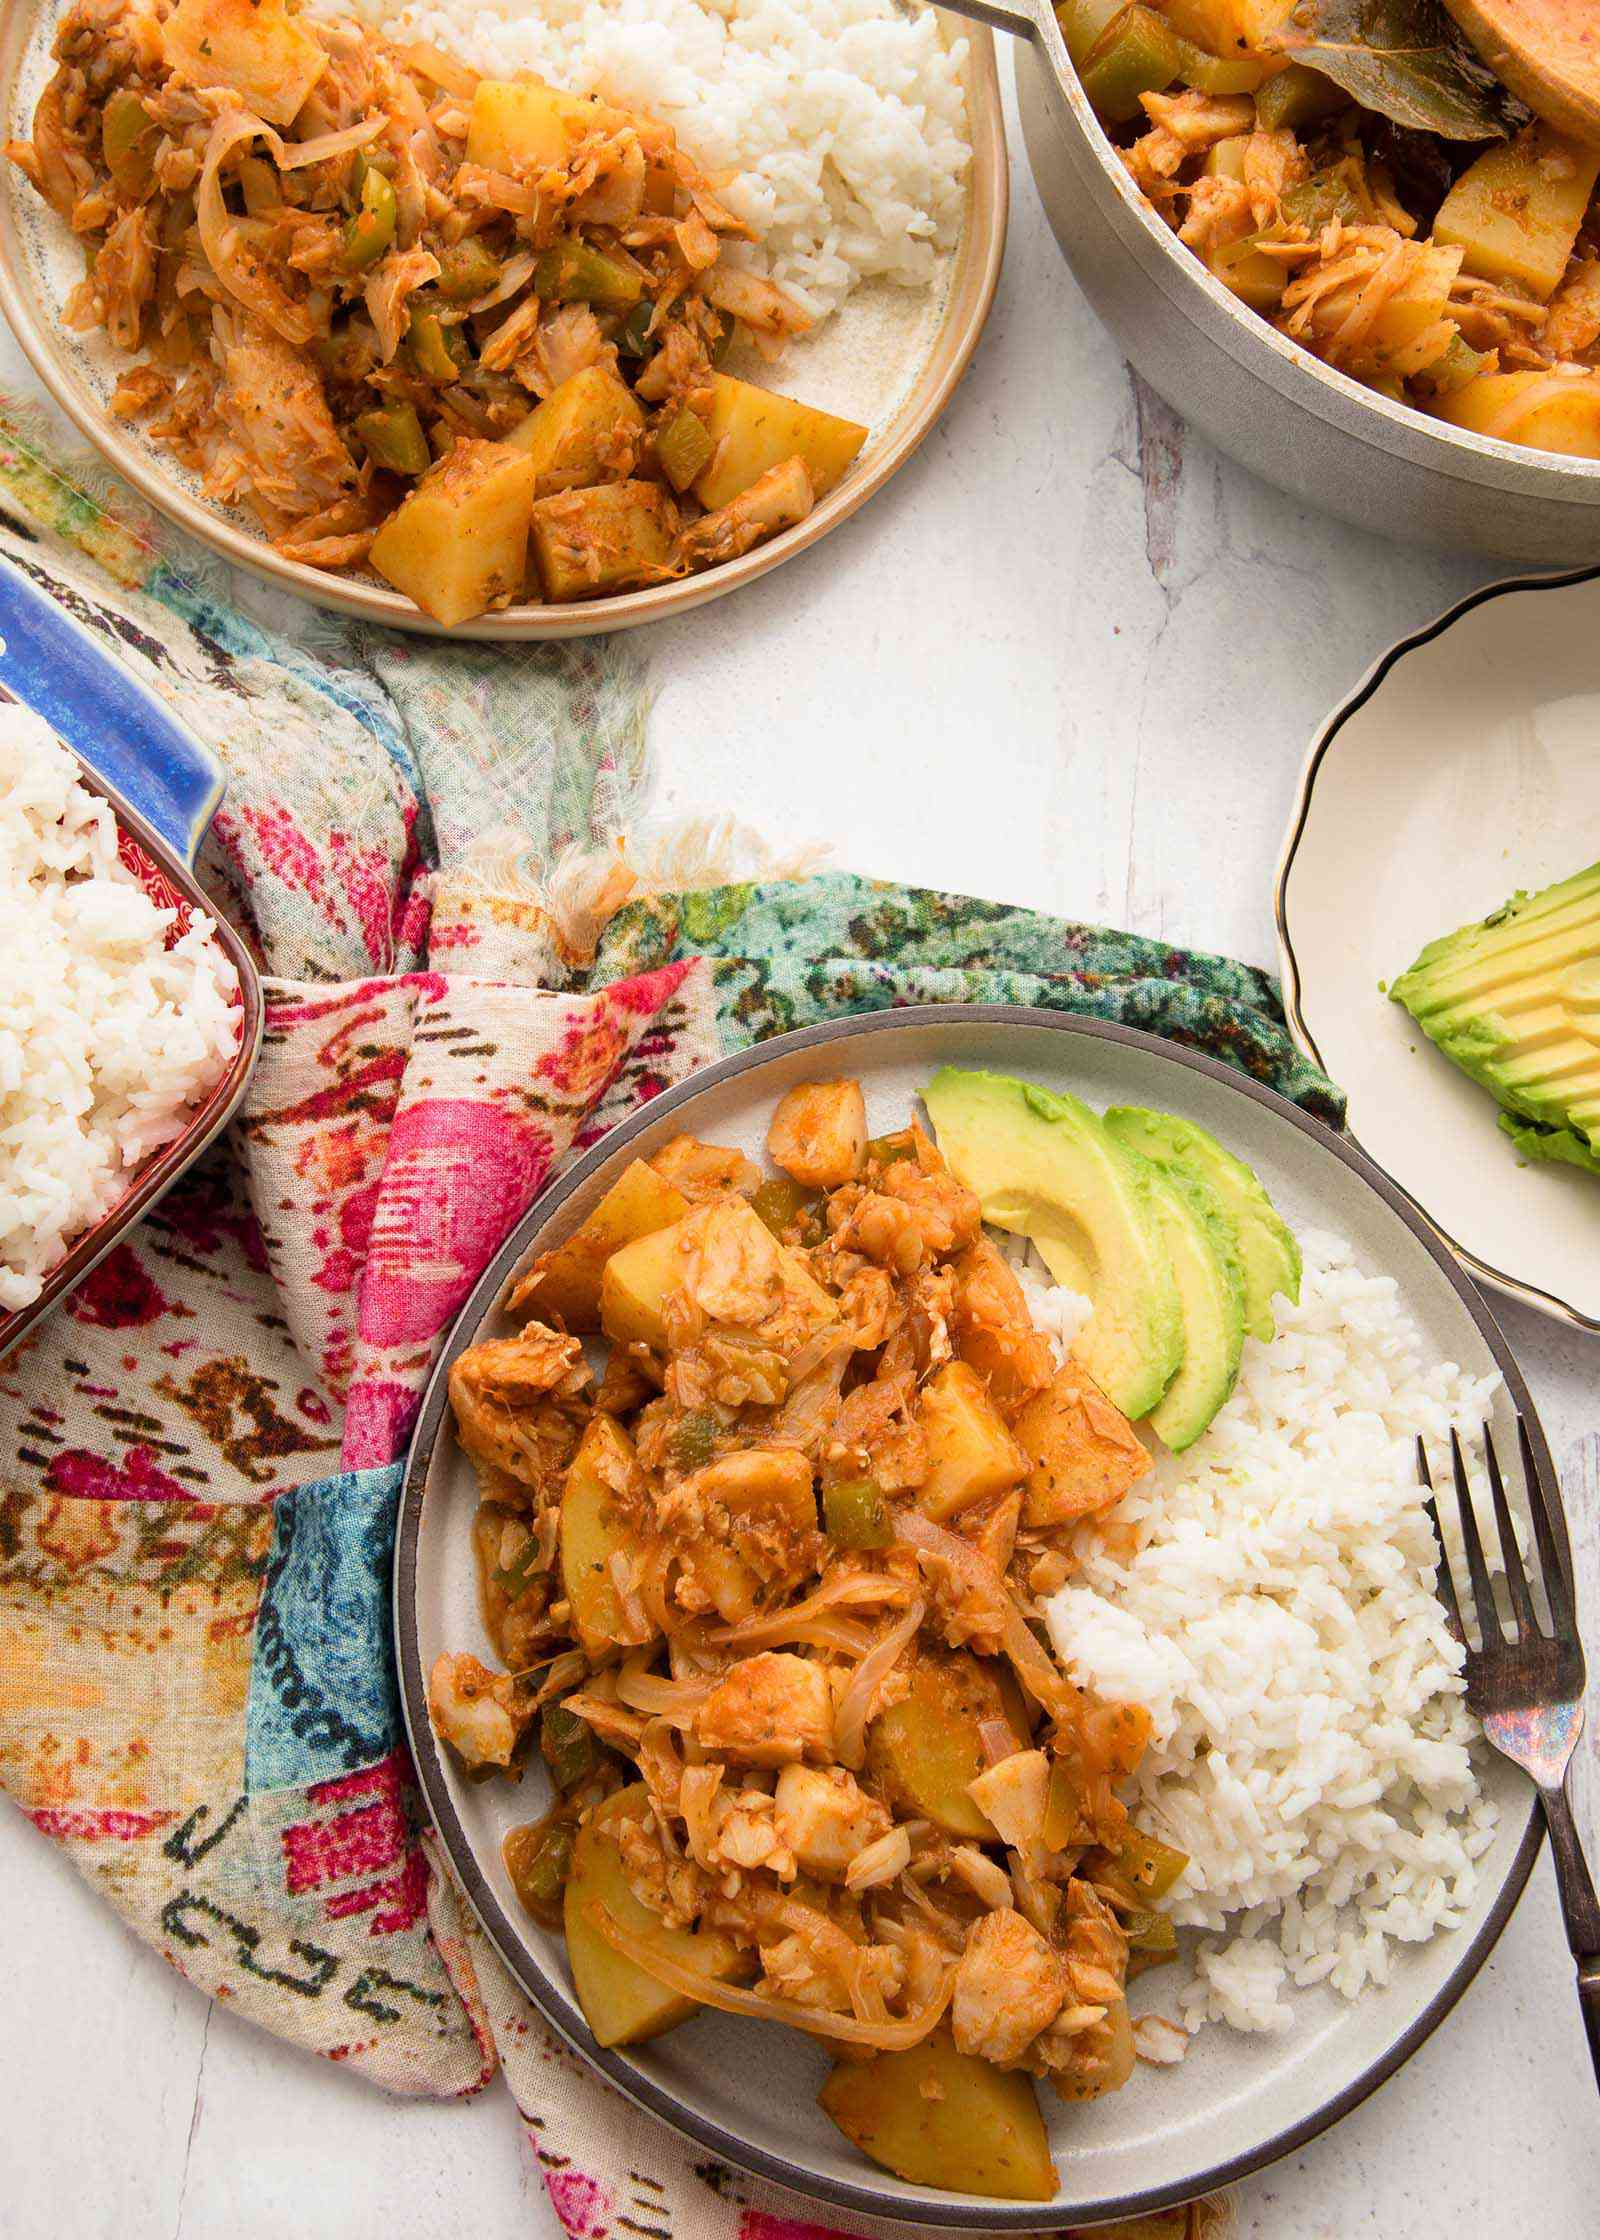 Overhead view of a rimmed plate with Puerto Rican Stewed Fish on the left side and sliced avocado and white rice on the right. A fork is on the plate to the right as well. Above the plate is small plate in partial view with sliced avocado on it. Above the avocado is a dutch oven with Lenten Cod recipe in partial view. To the left of the dutch oven is another rimmed plate with stewed codfish and white rice. A bright patterened linen is underneath the plate and white rice is in a blue casserole dish in partial view.